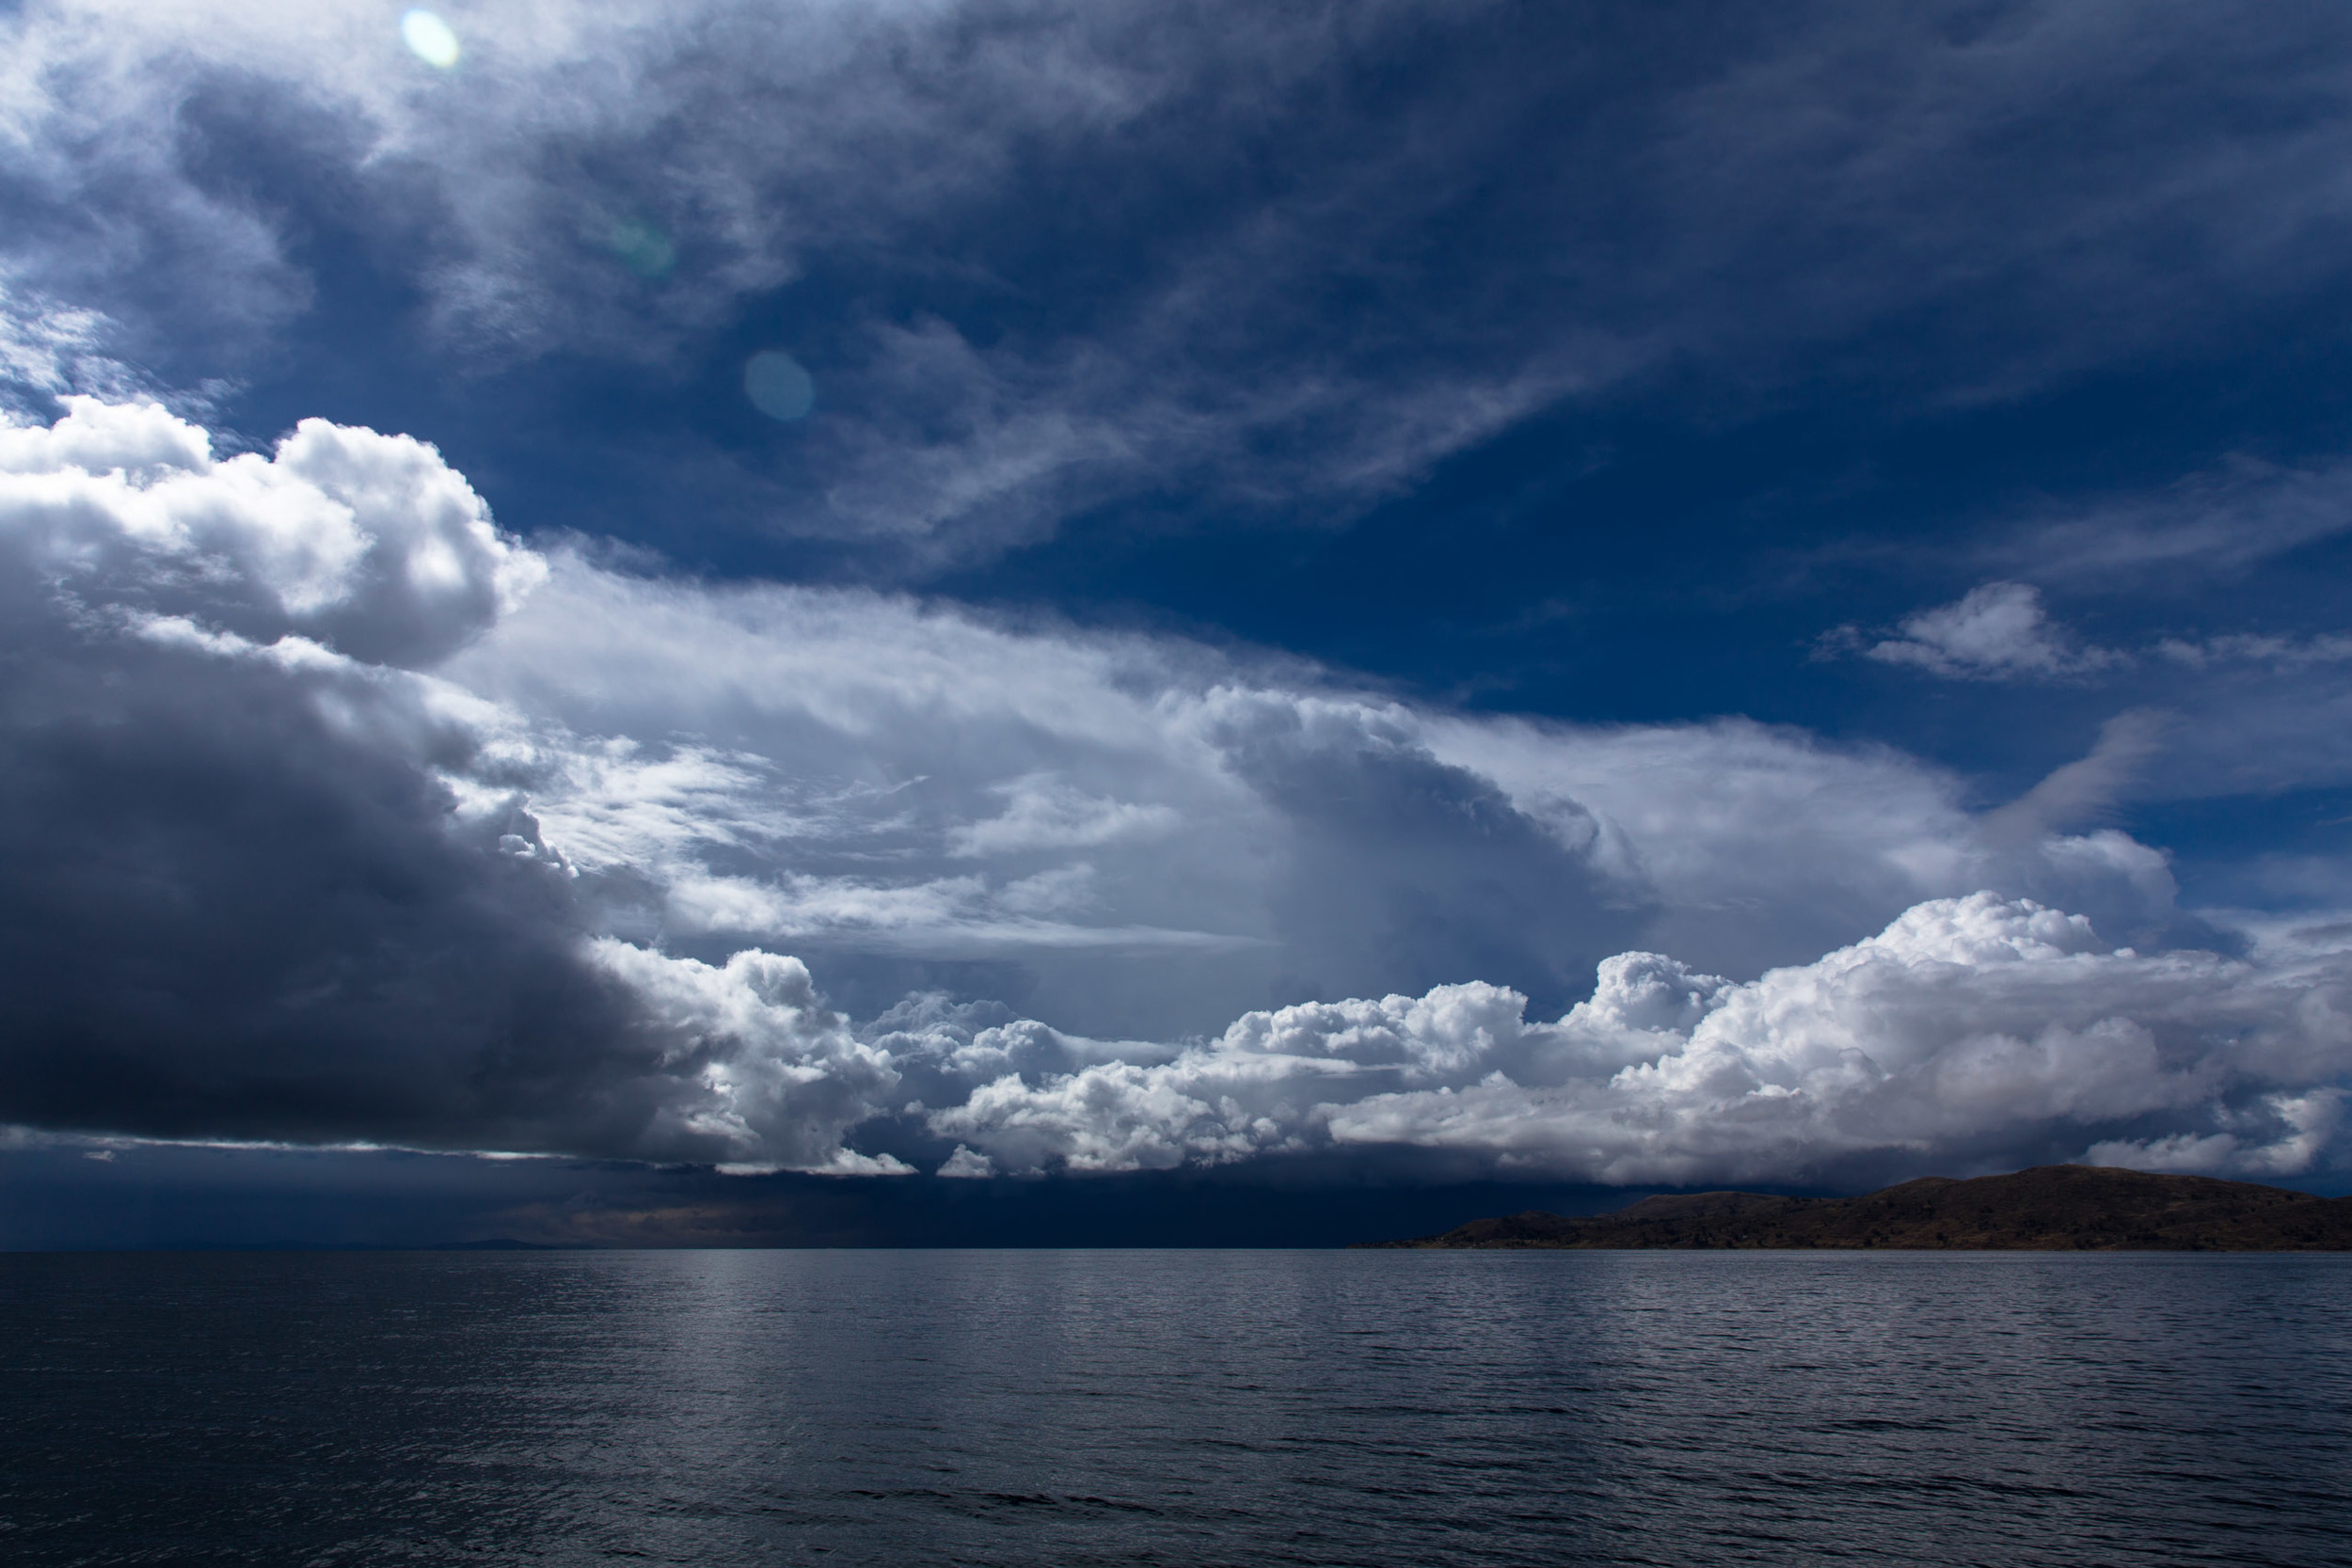 A storm on the horizon as our small ferry passes the Llachon peninsular.